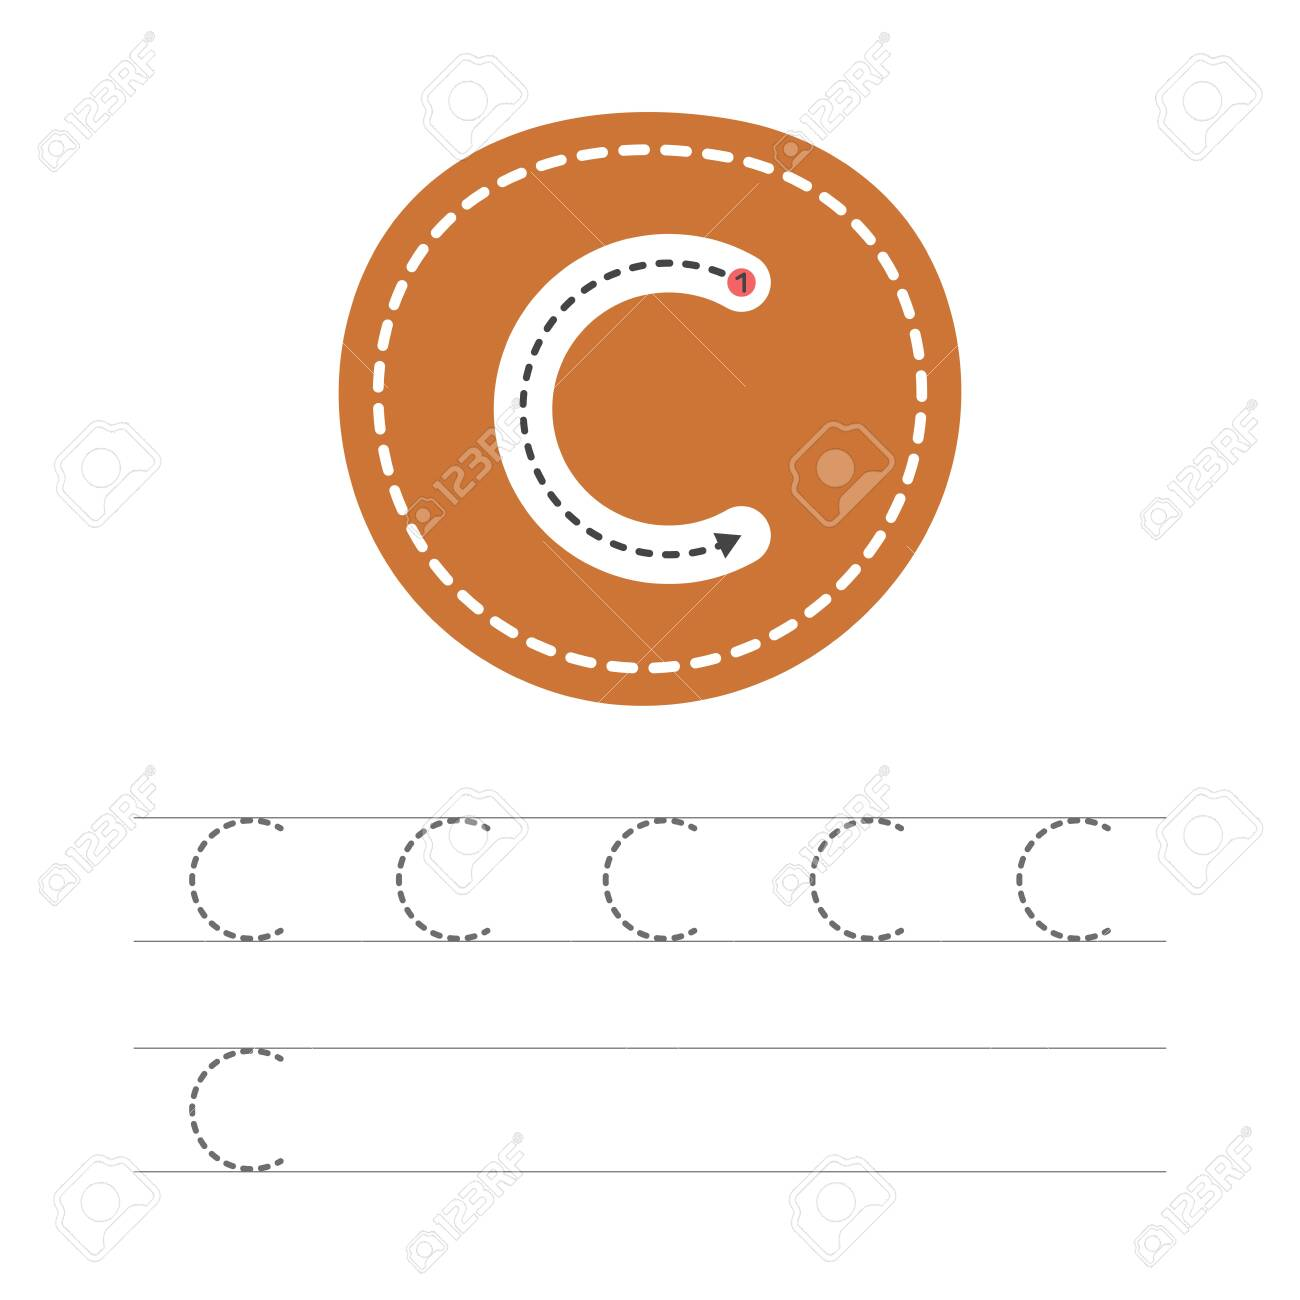 Learning To Write A Letter - C. A Practical Sheet From A Set ...